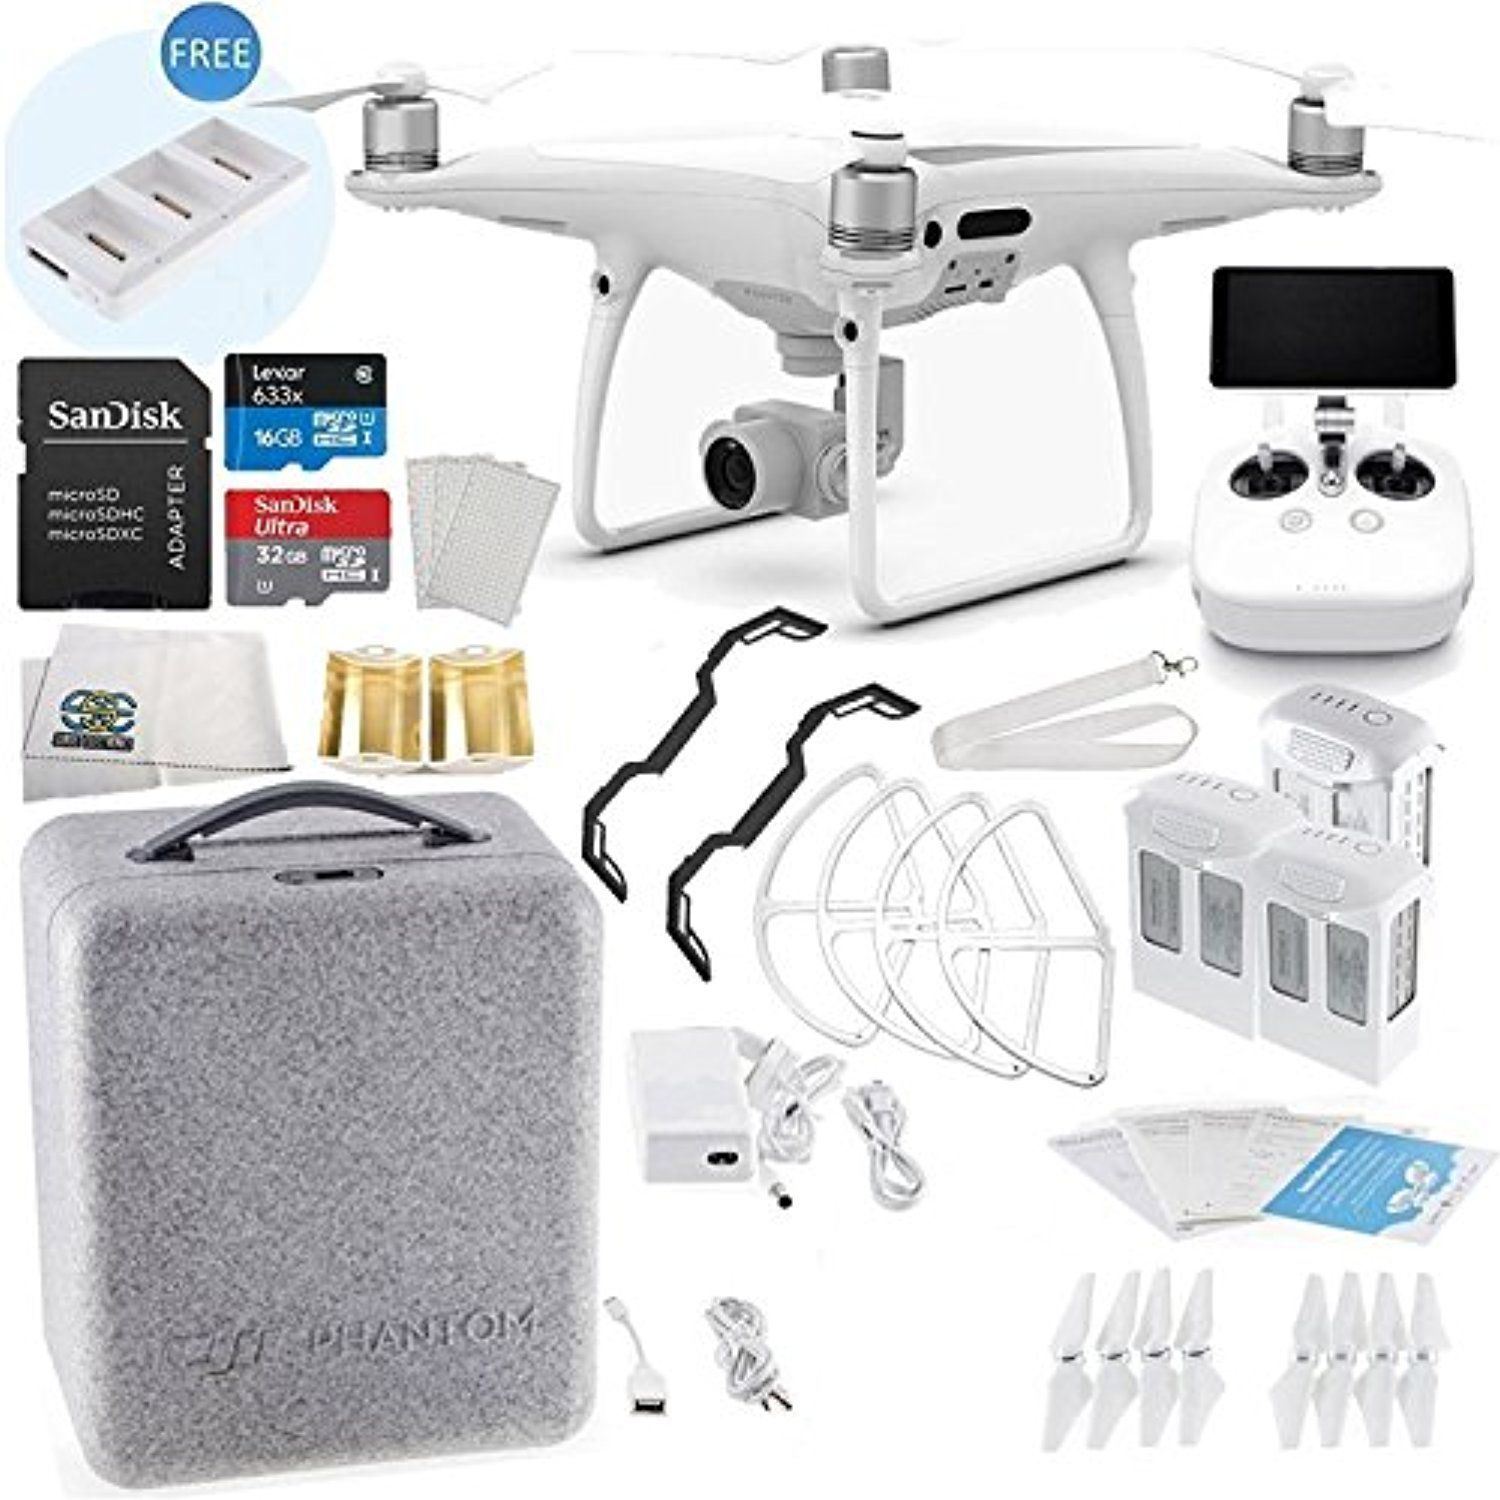 Dji Phantom 4 Pro Plus Quadcopter Ultimate Flyer Bundle Kit Details Can Be Found By Clicking On The Image This Is An Dji Phantom 4 Quadcopter Dji Phantom